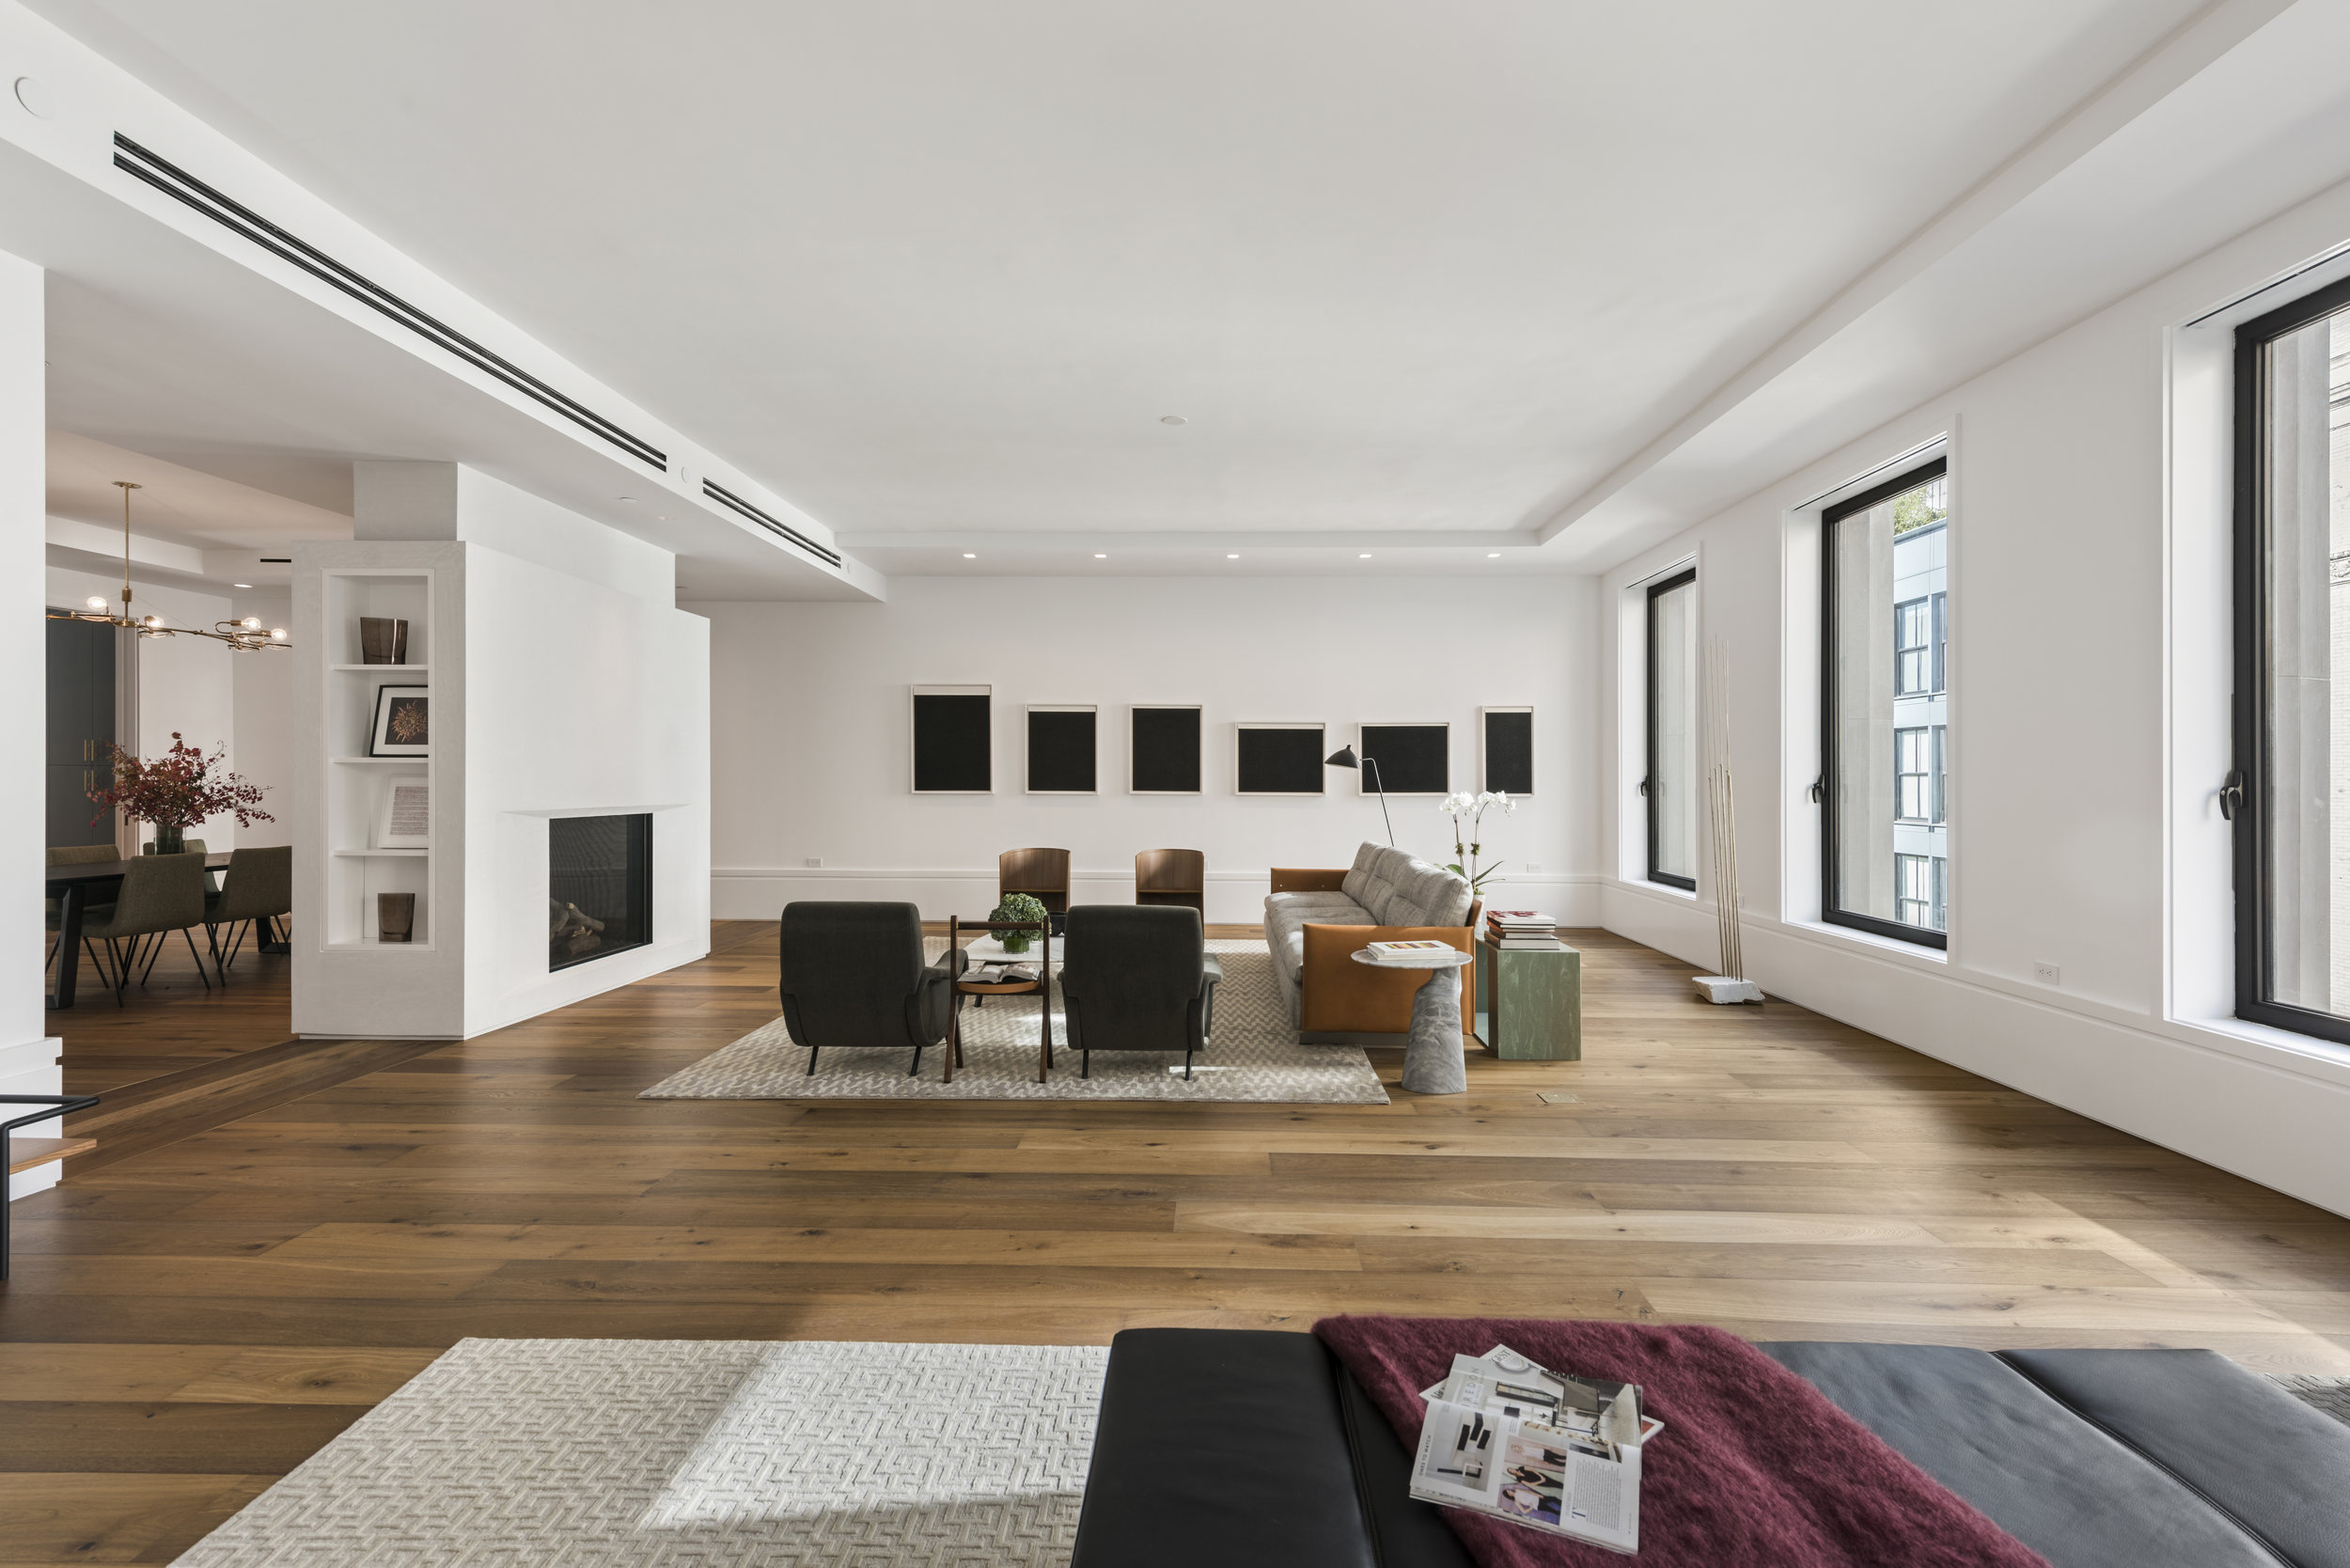 PROFILE Exclusive: Designing and Developing In SoHo's Cast Iron District At 150 Wooster With KUB's Roger Bittenbender